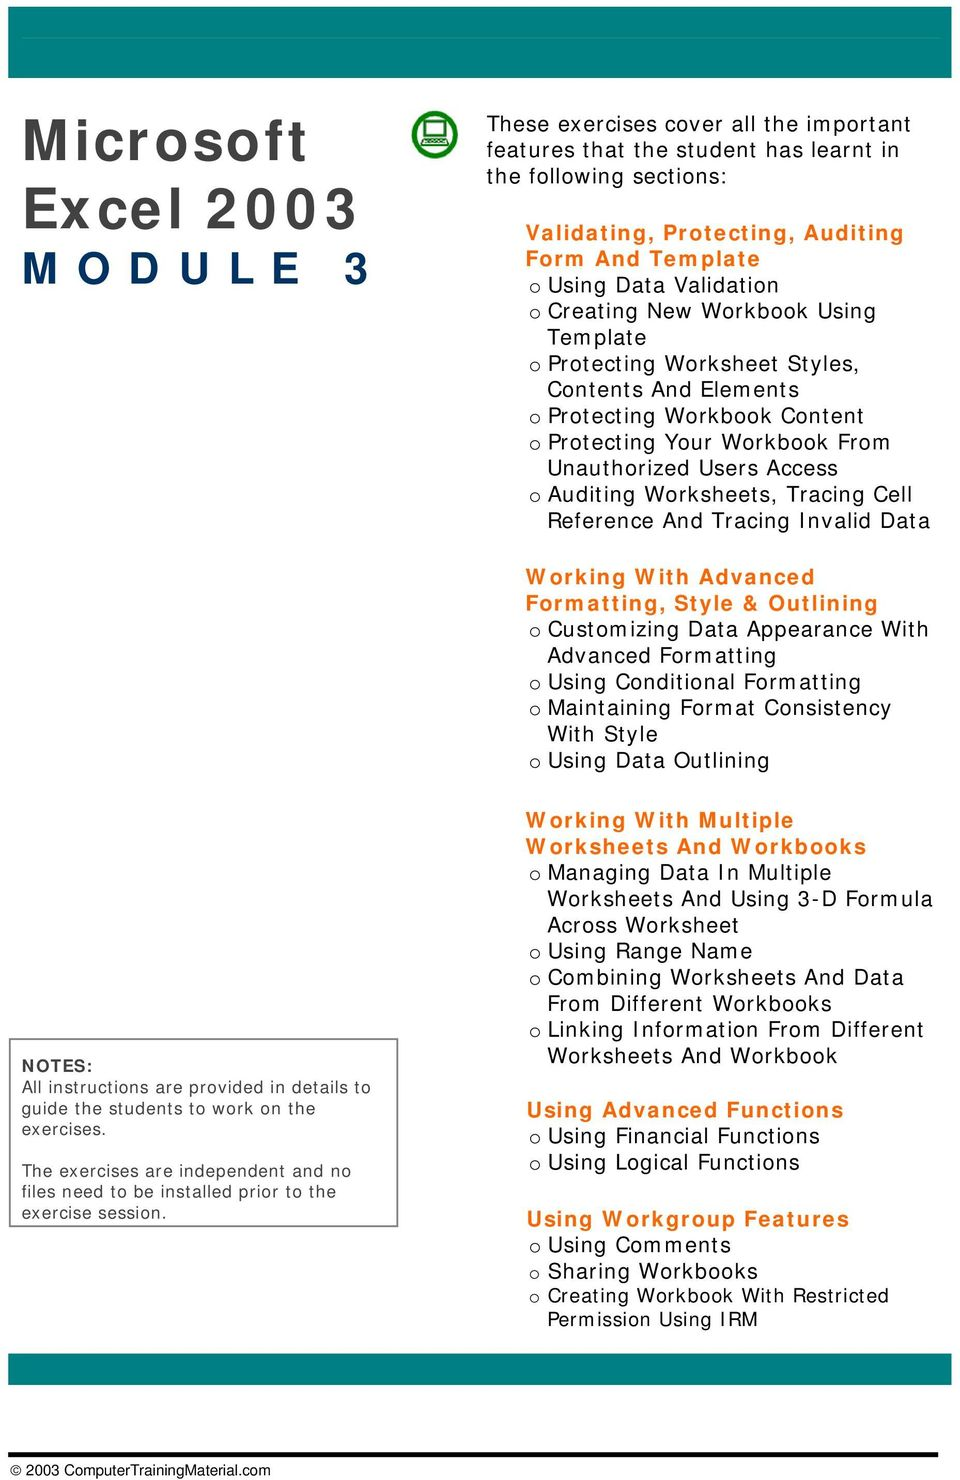 Worksheets, Tracing Cell Reference And Tracing Invalid Data Working With  Advanced Formatting, Style &